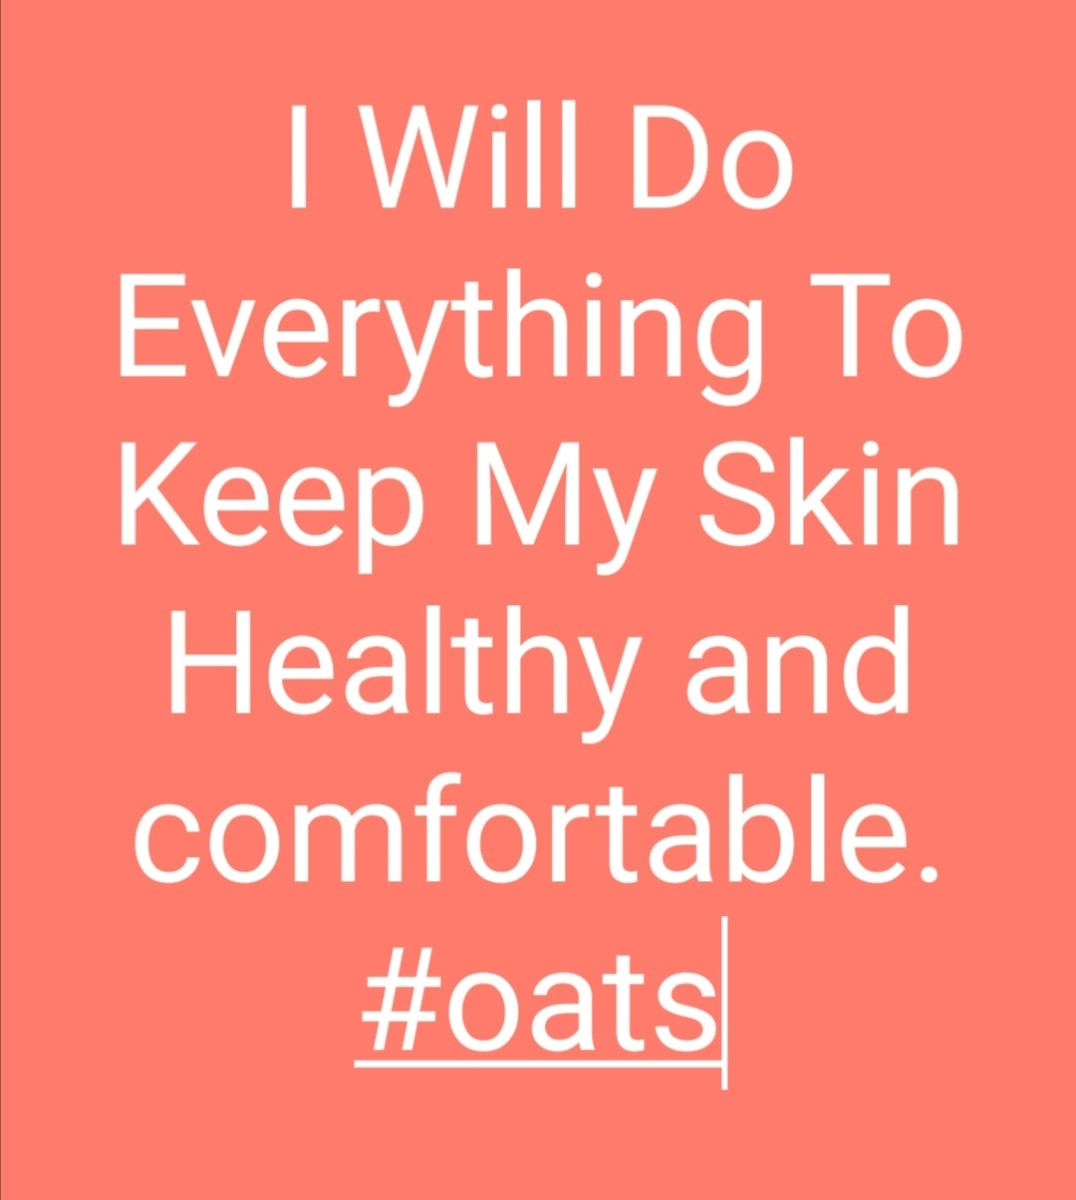 My First Oatmeal Bath and Why I'd Do It Again